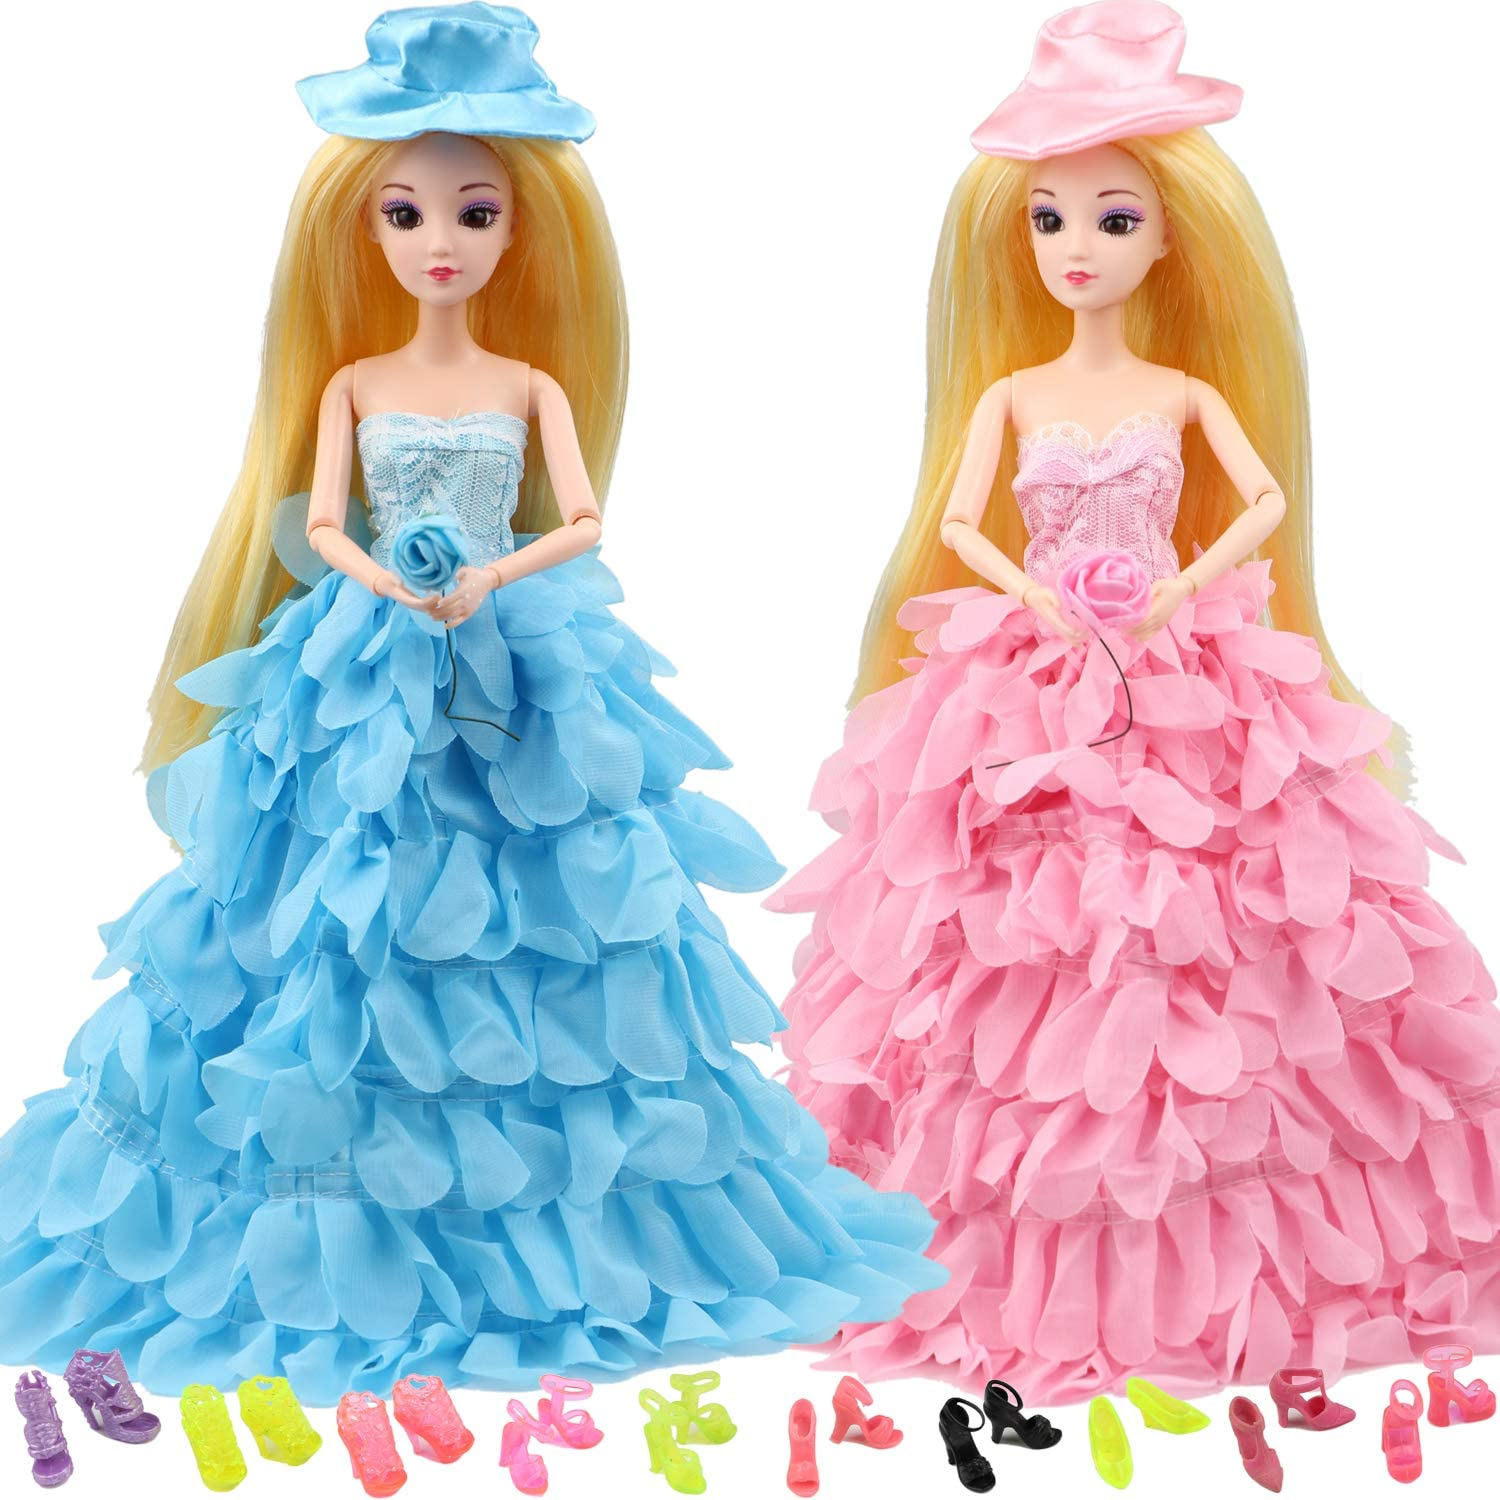 MIBBQ 12pcs Dolls Clothes Shoes